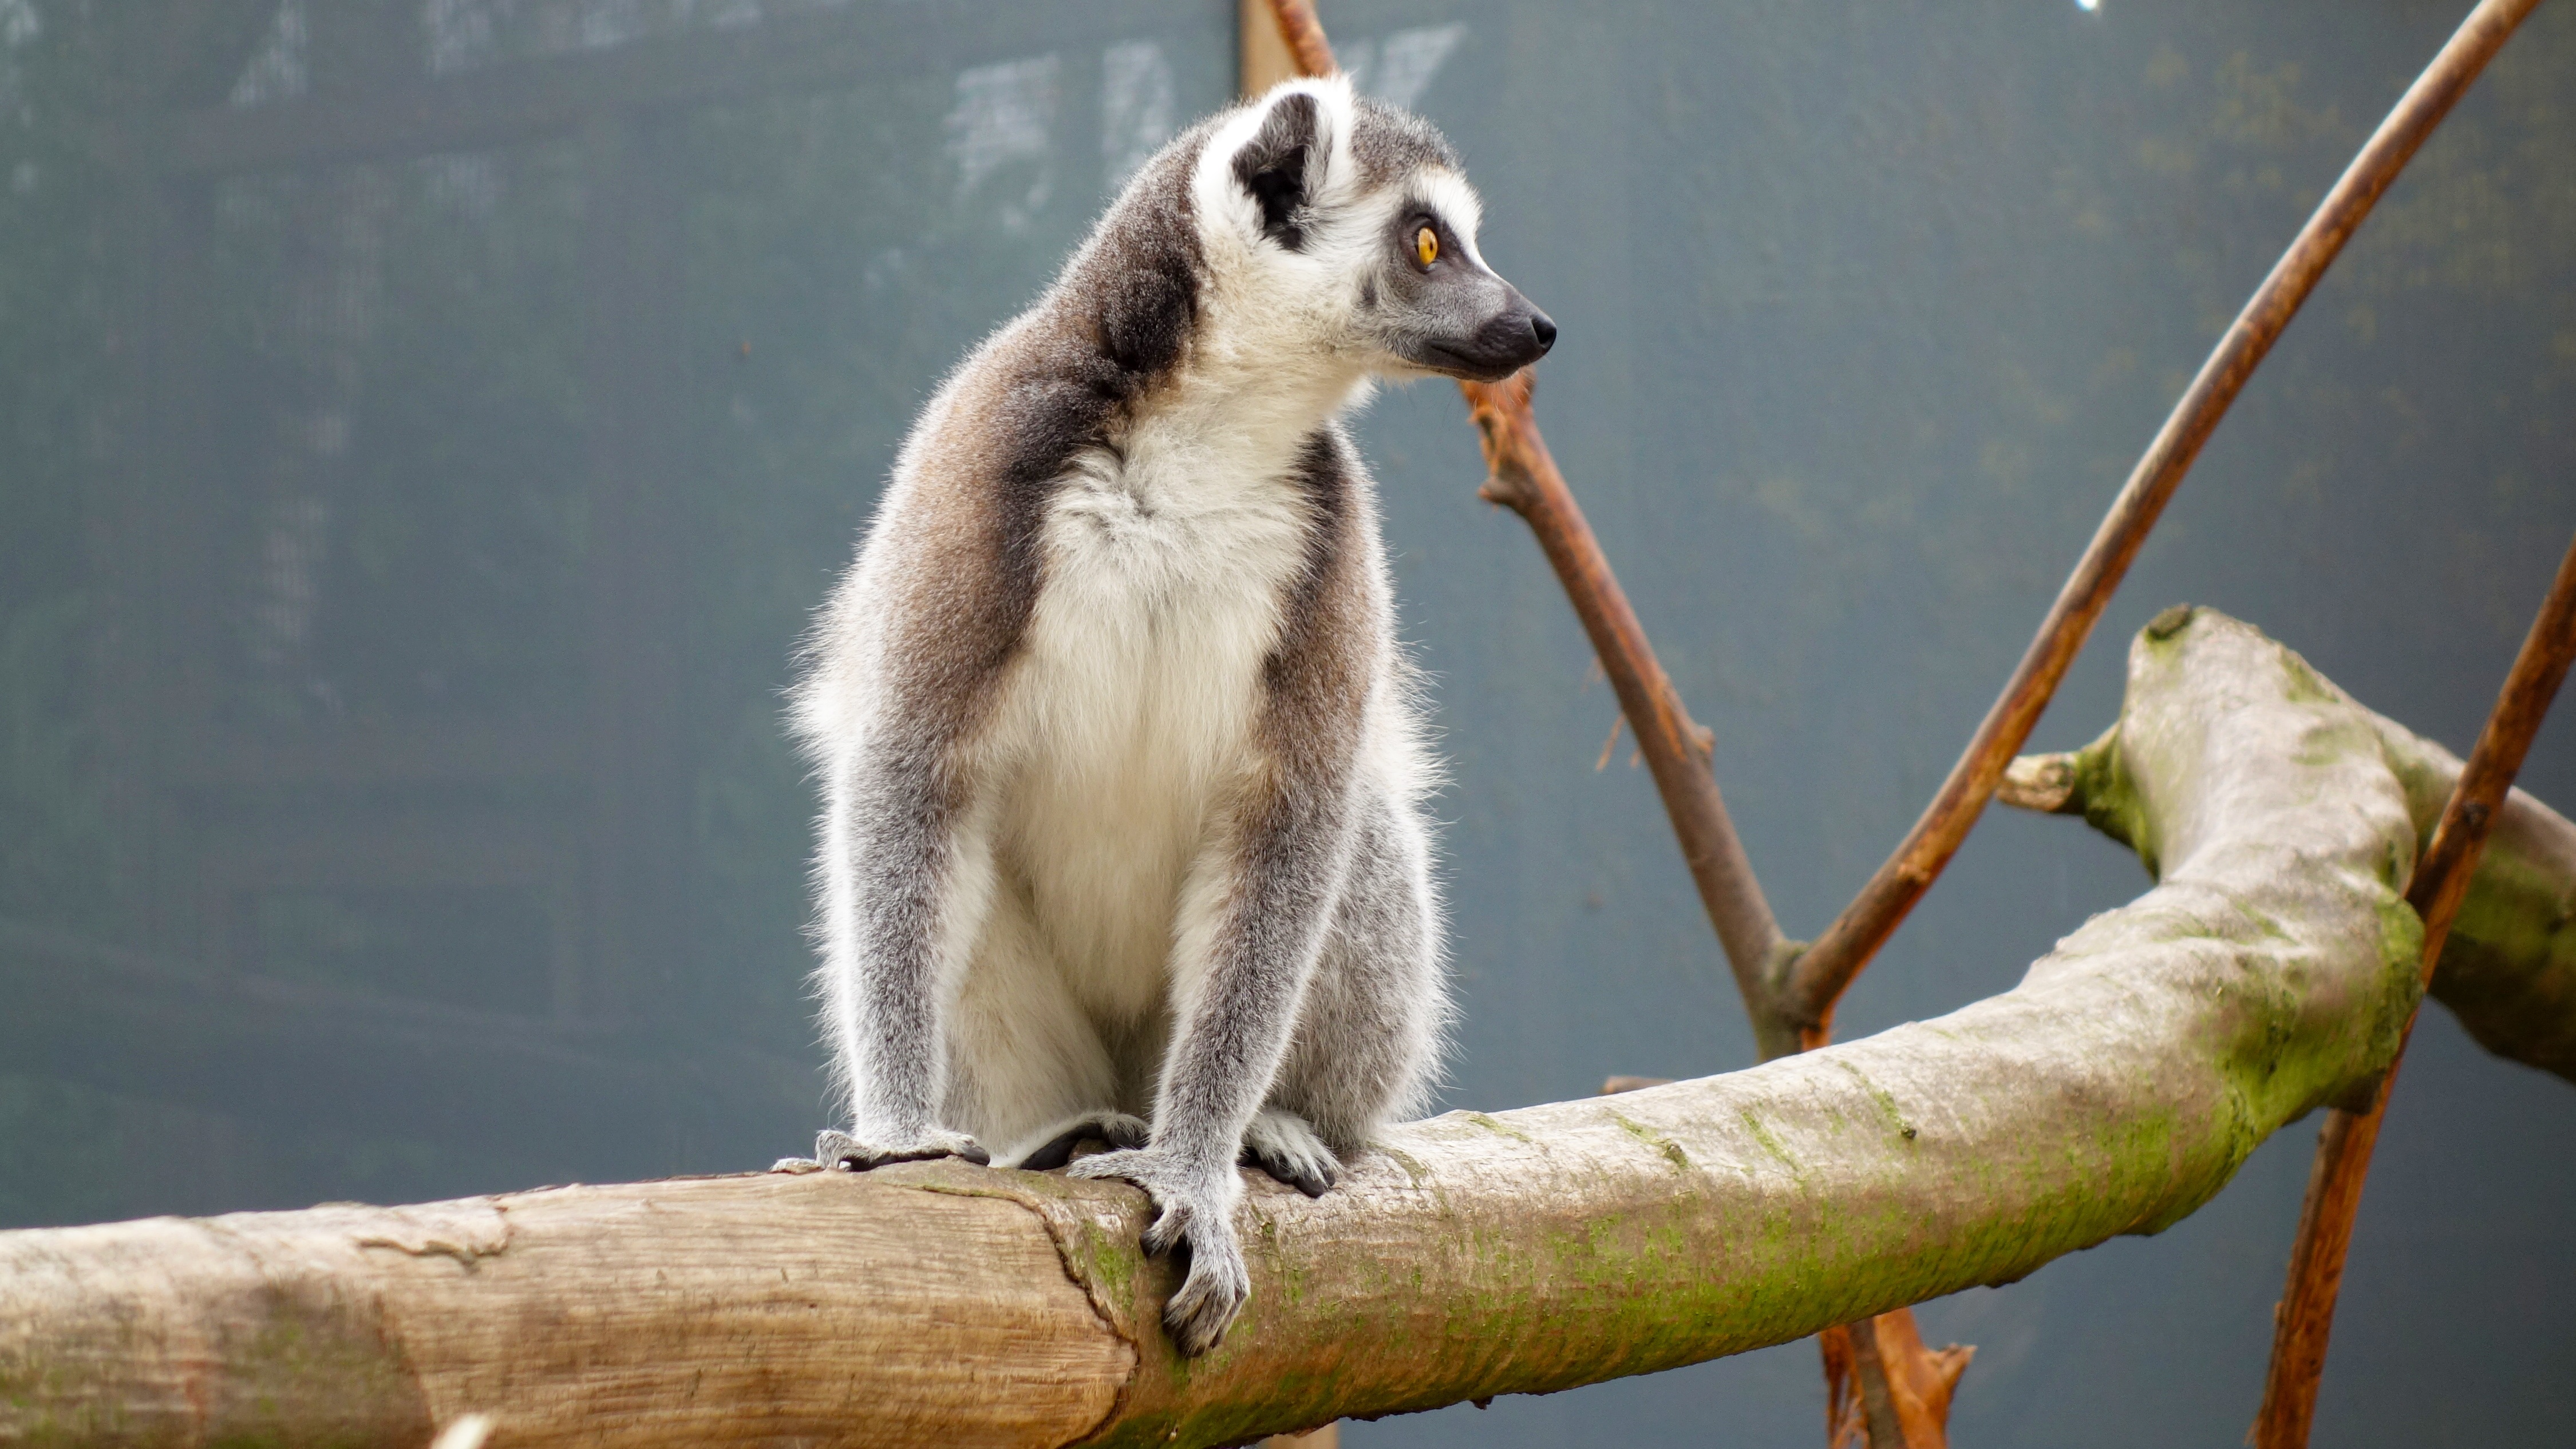 112049 download wallpaper Animals, Lemur, Reserve, Is Sitting, Sits screensavers and pictures for free